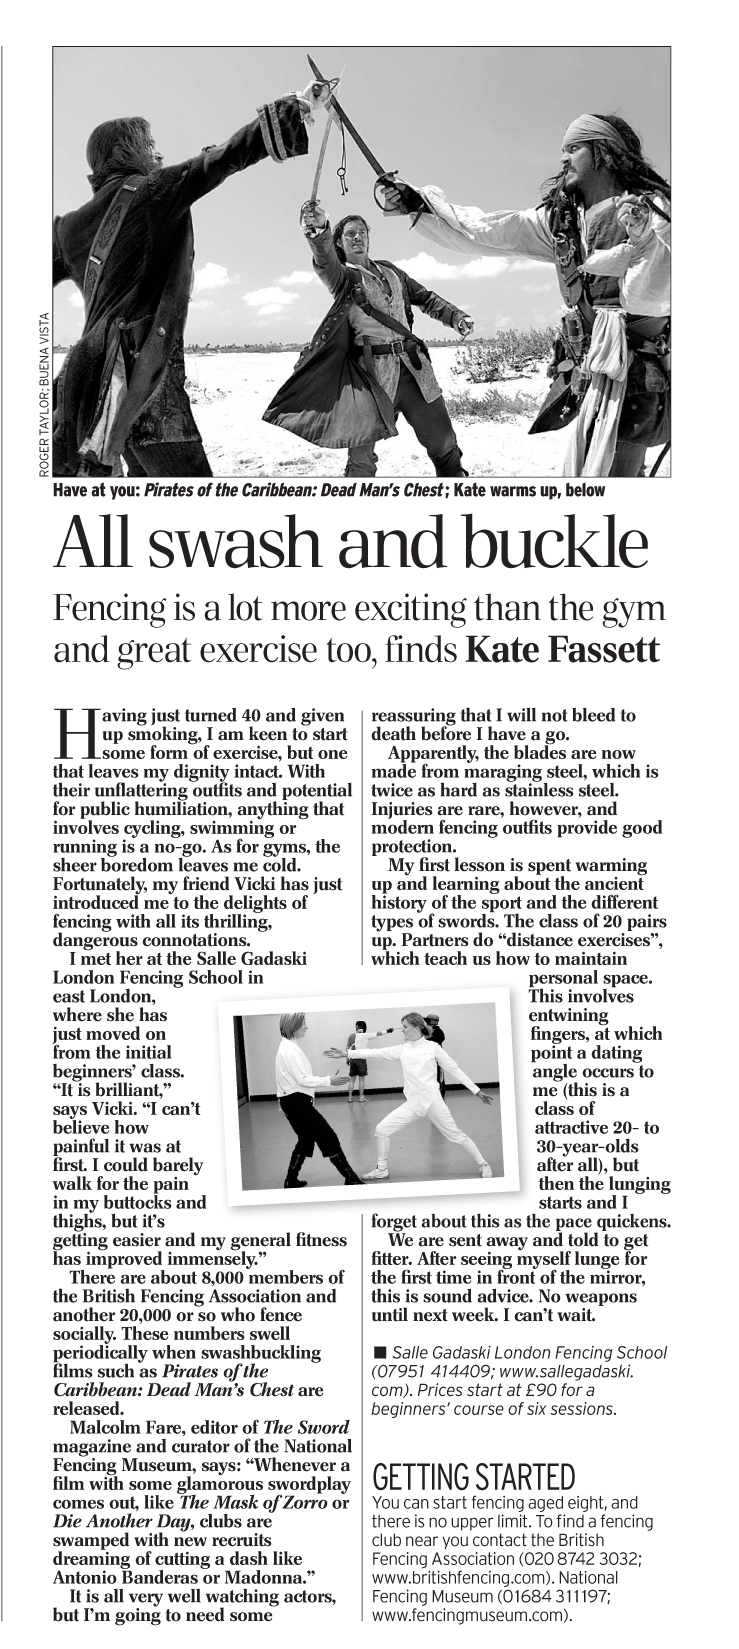 Fencing article from Sunday Telegraph